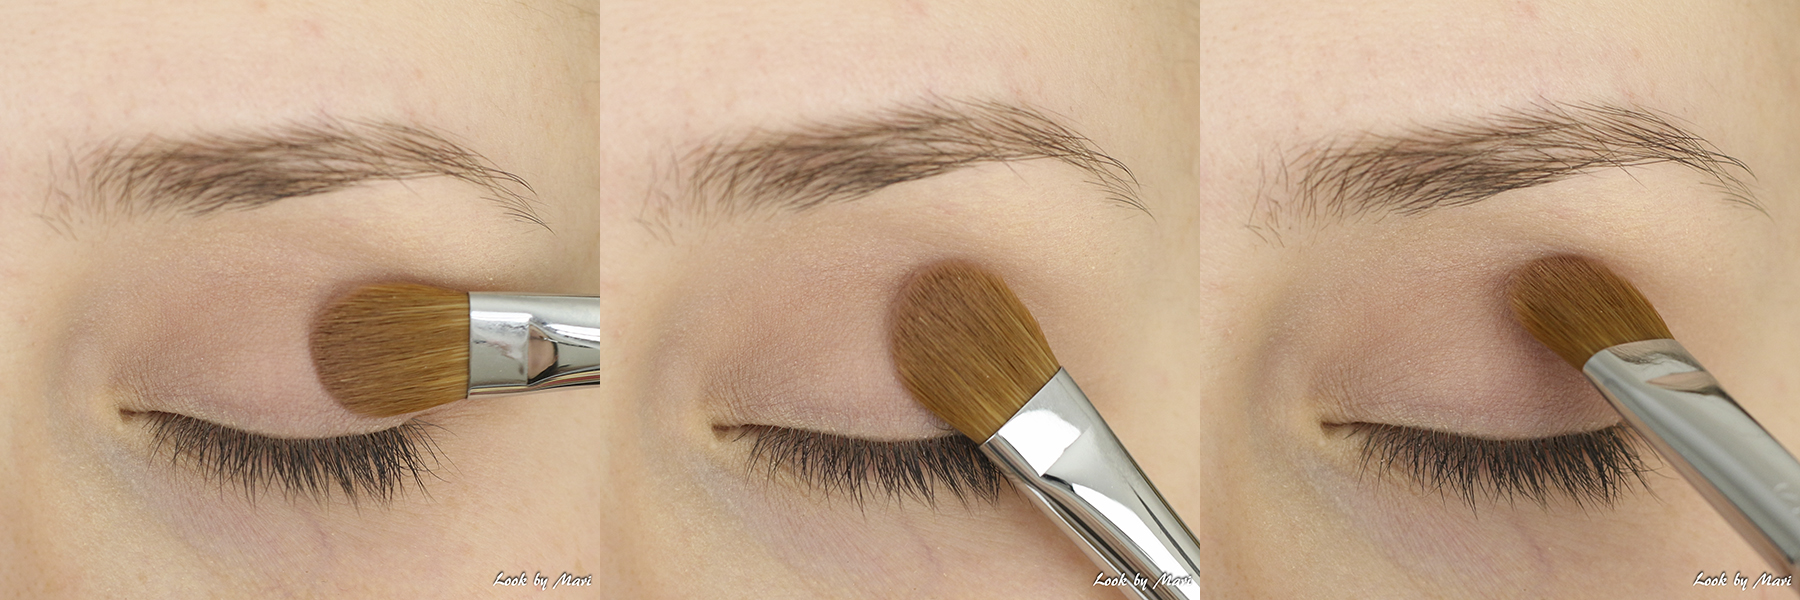 11 sigma beauty e60 review blending brush use tutorial blog